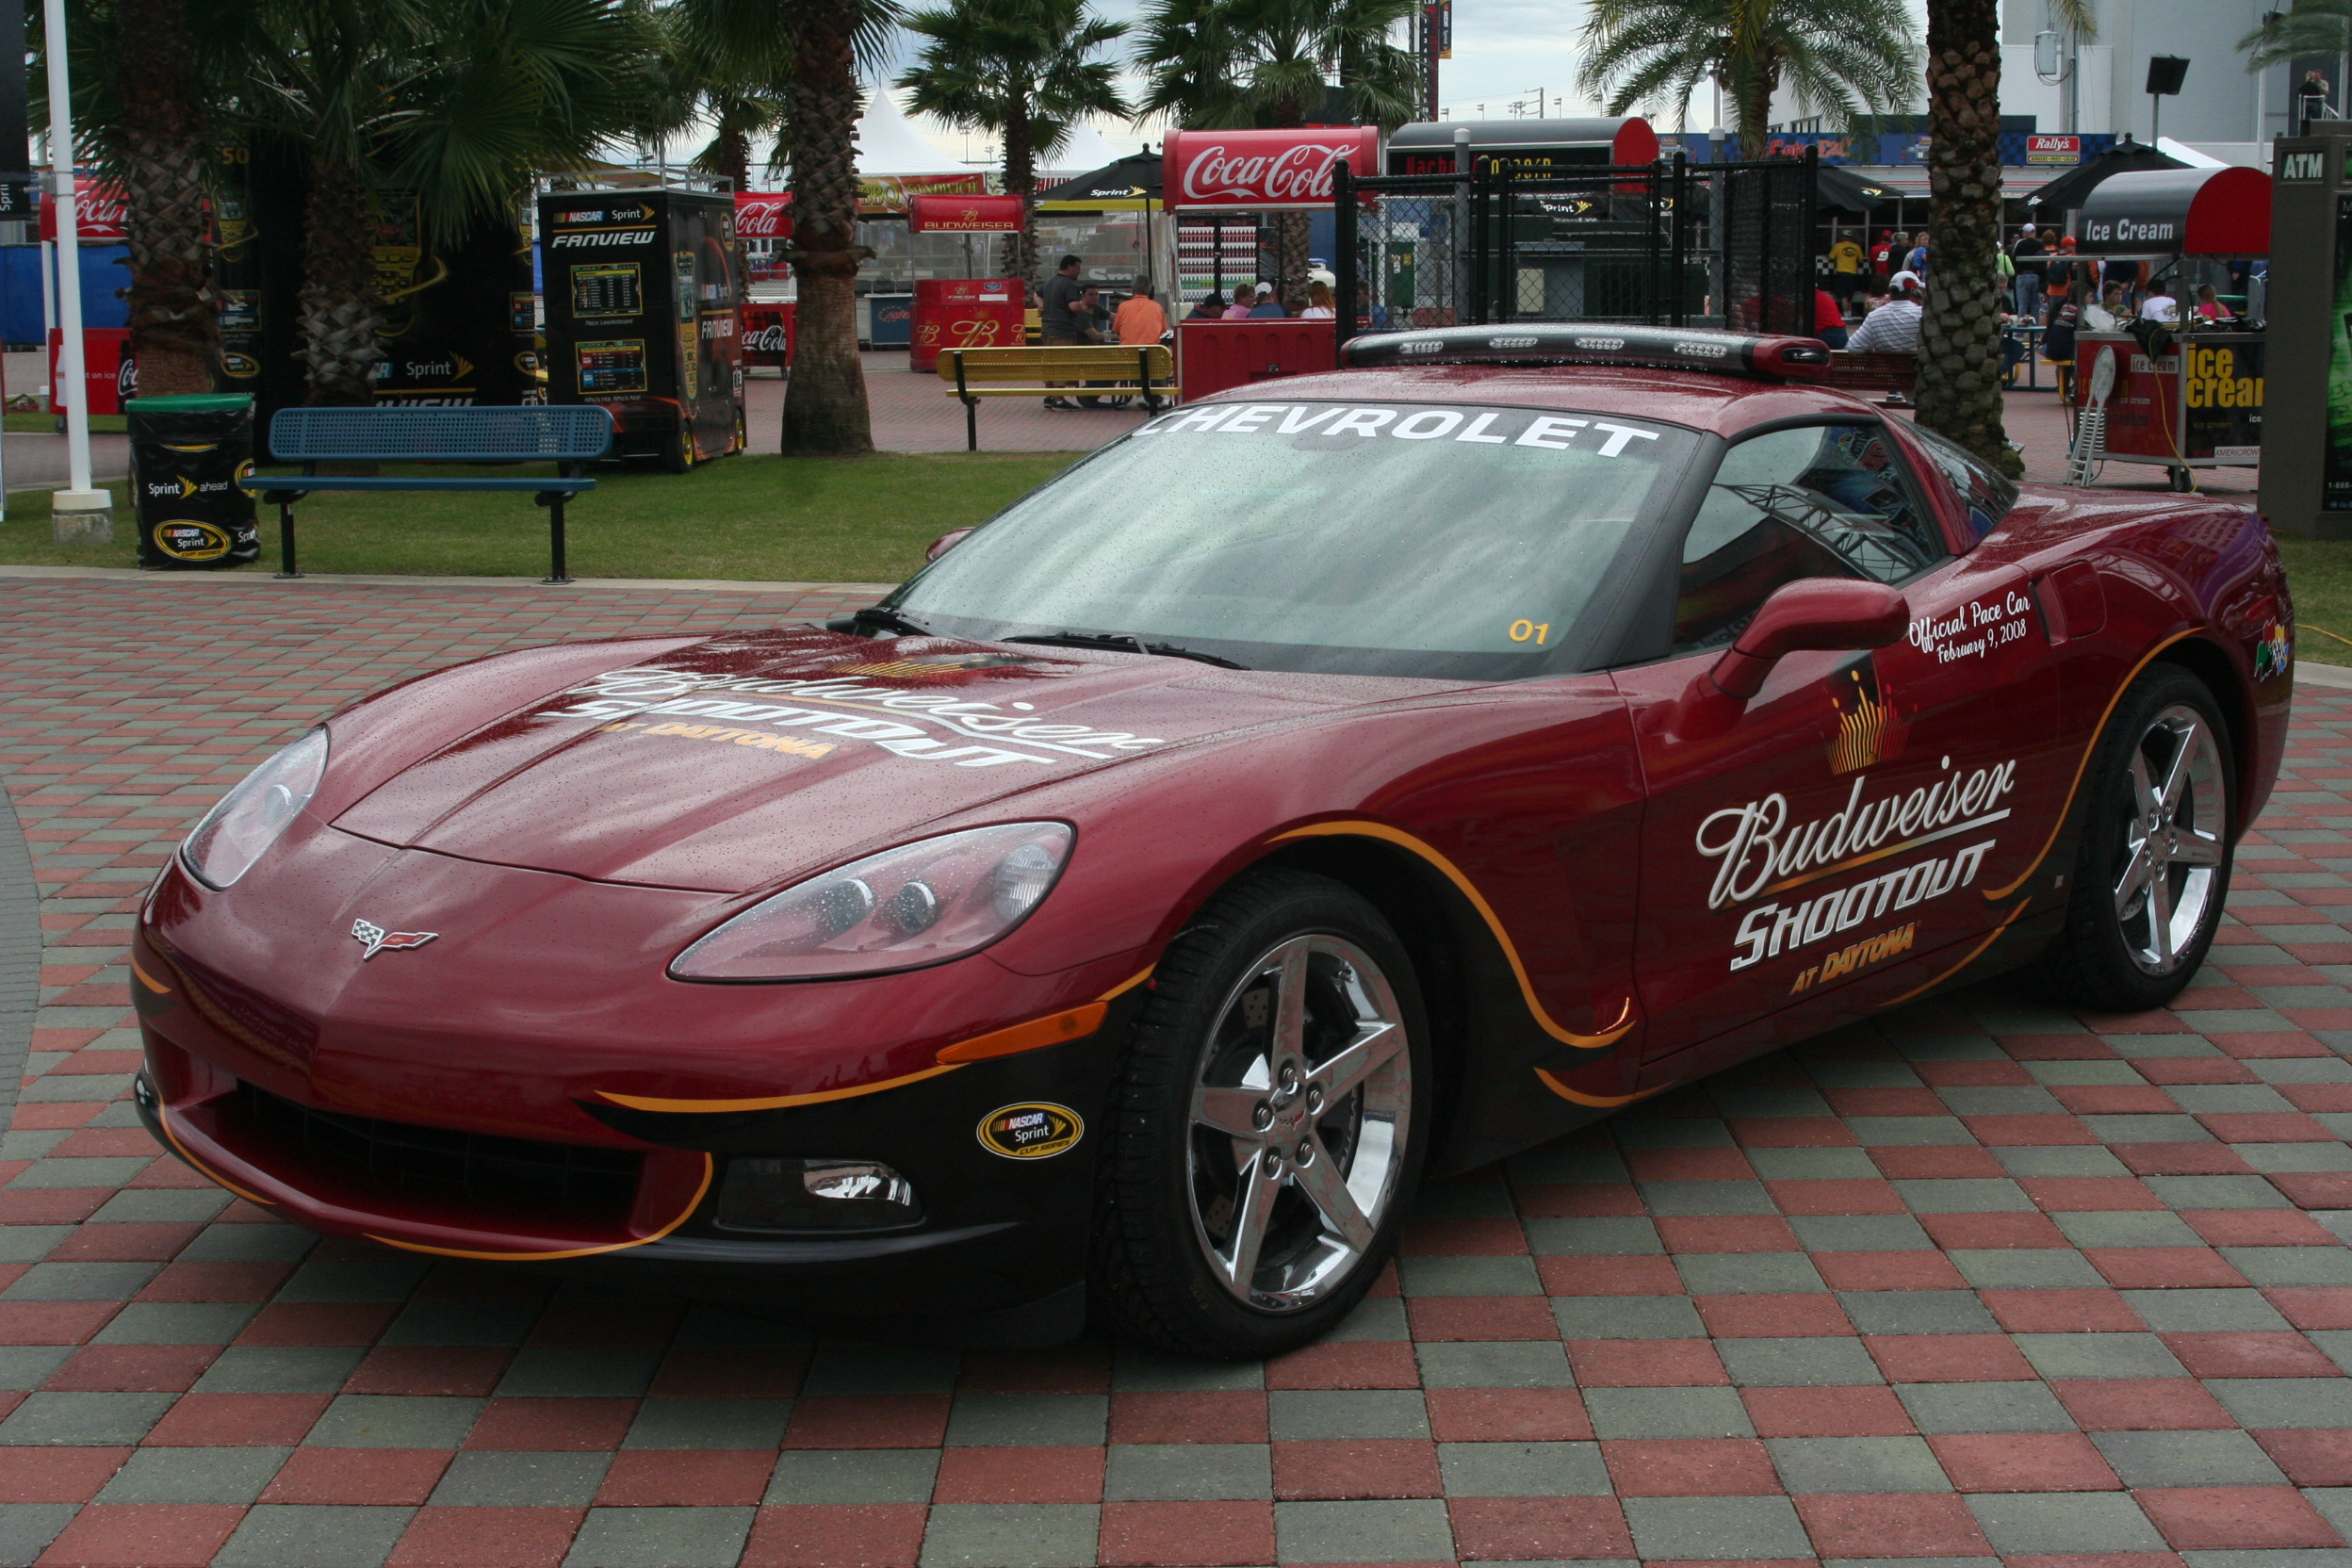 2008 corvette pace car chevy corvette. Black Bedroom Furniture Sets. Home Design Ideas